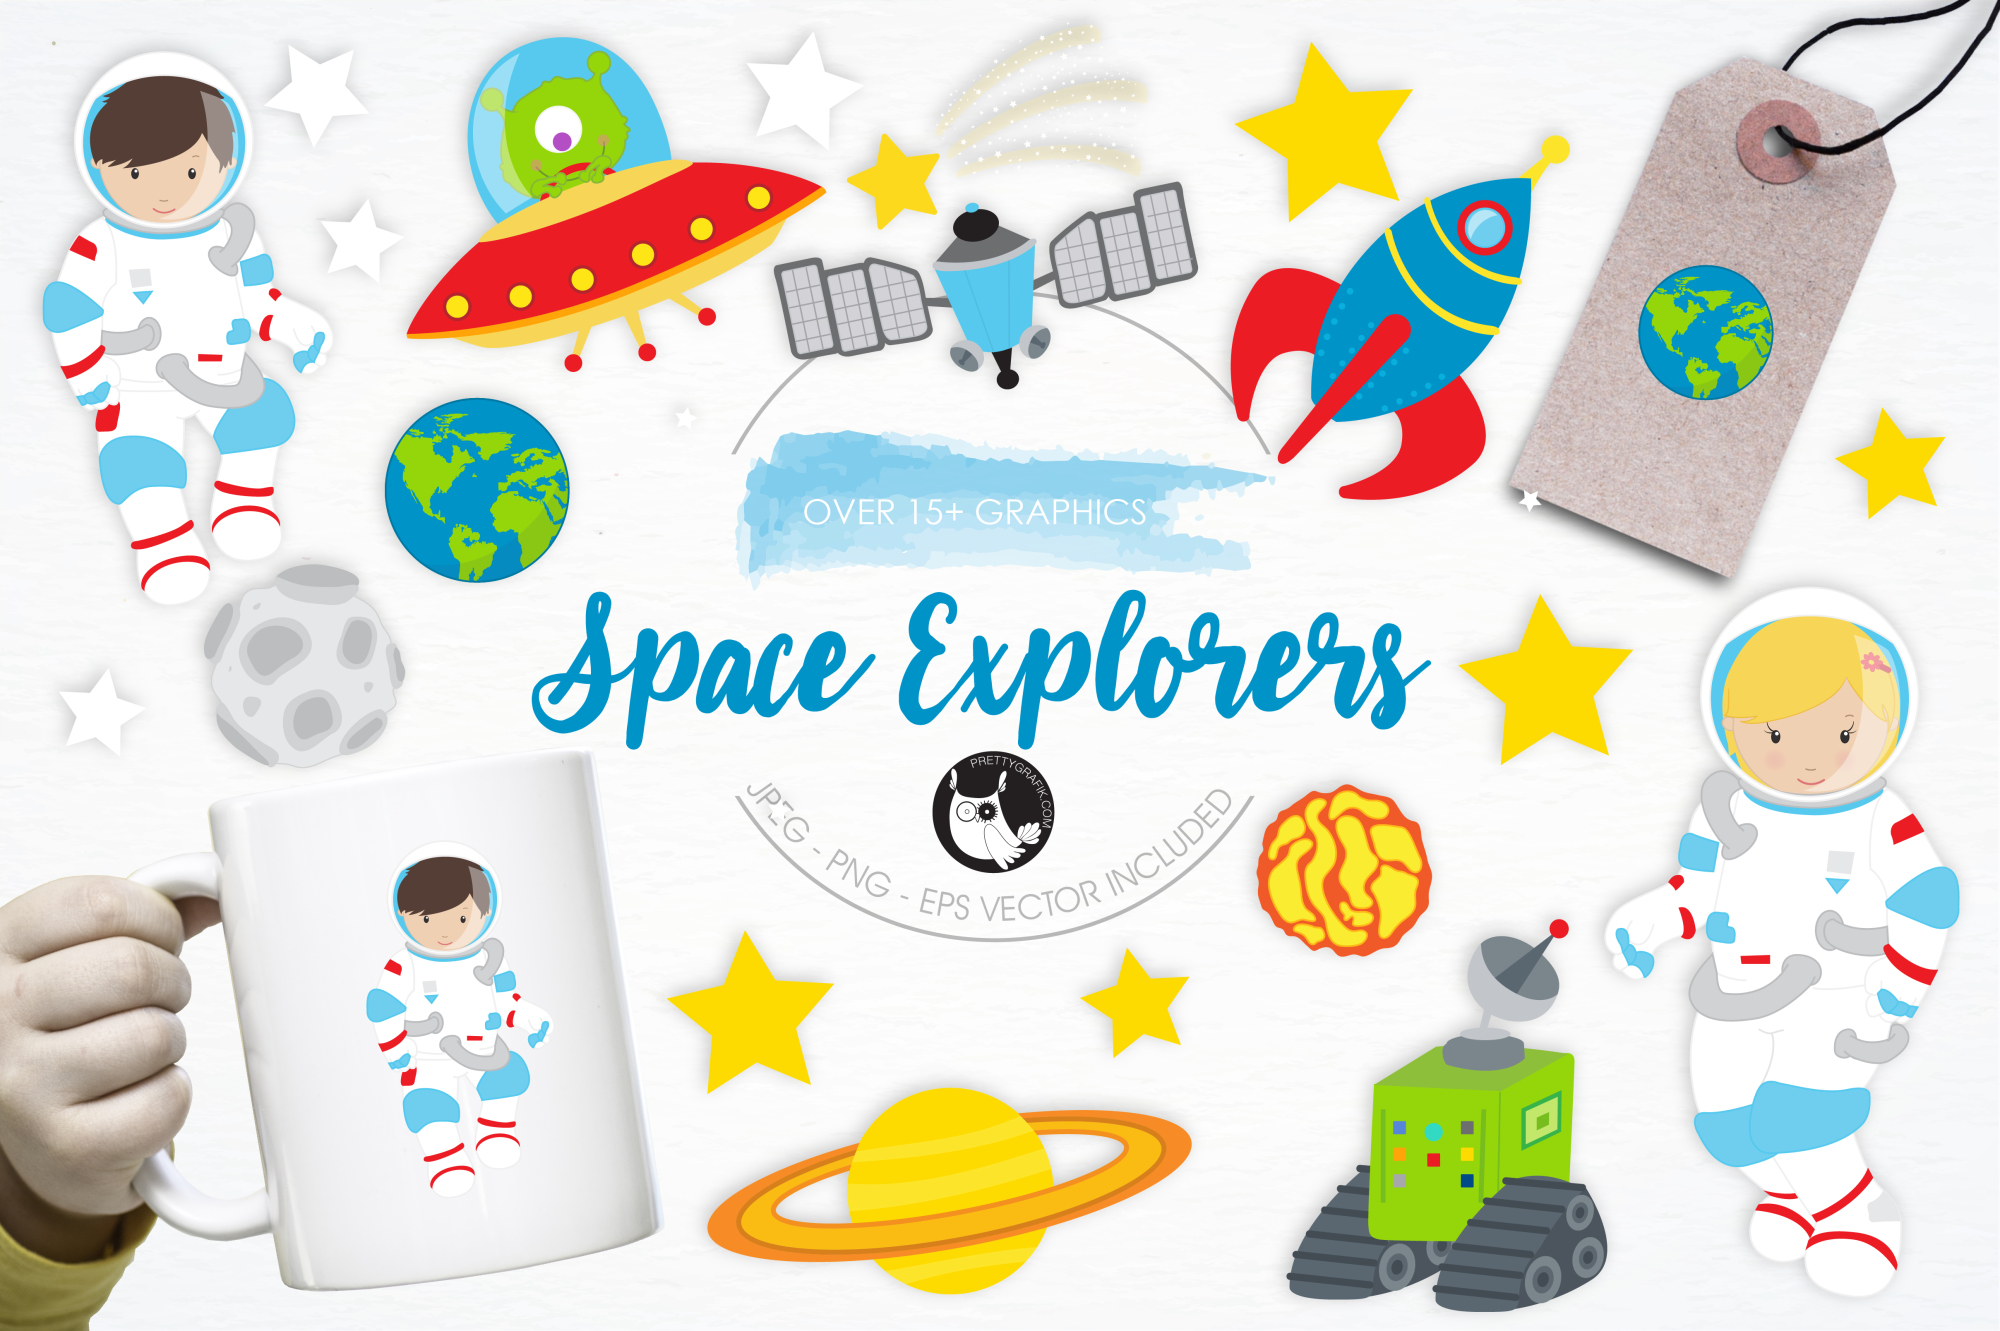 Space Explorers graphics and illustrations example image 1